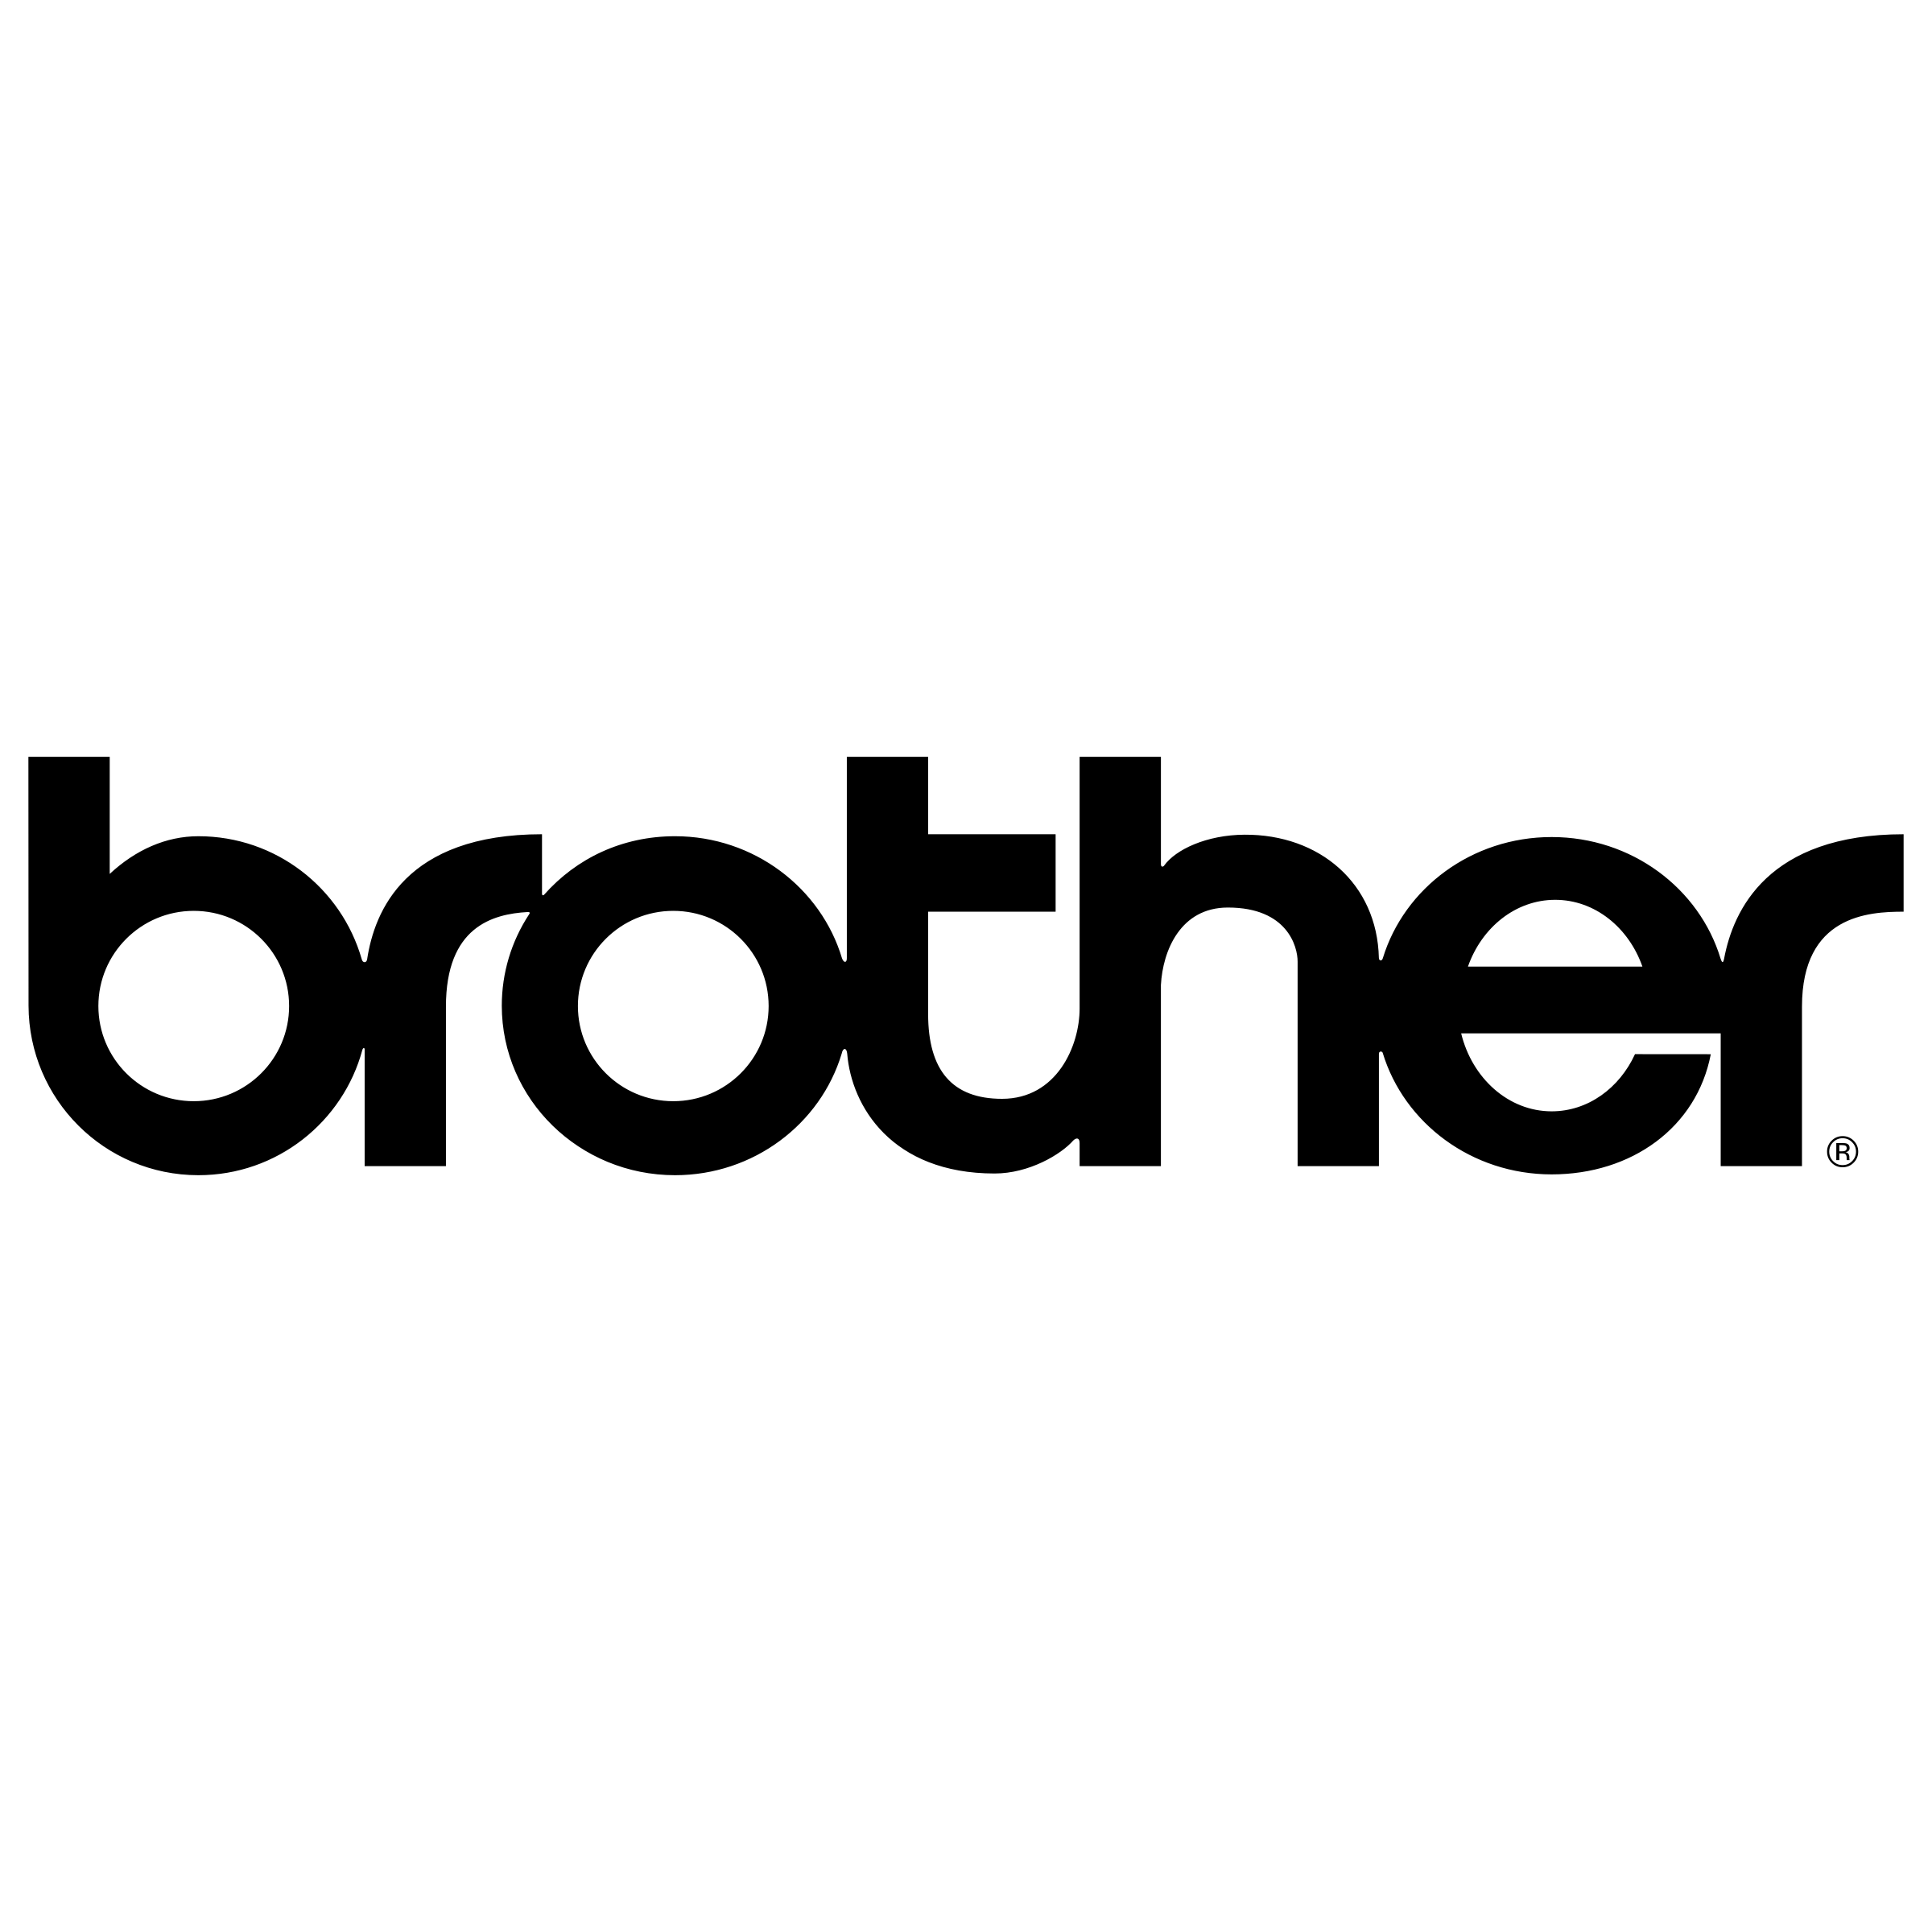 Brother Logo - Brother Logo PNG Transparent & SVG Vector - Freebie Supply